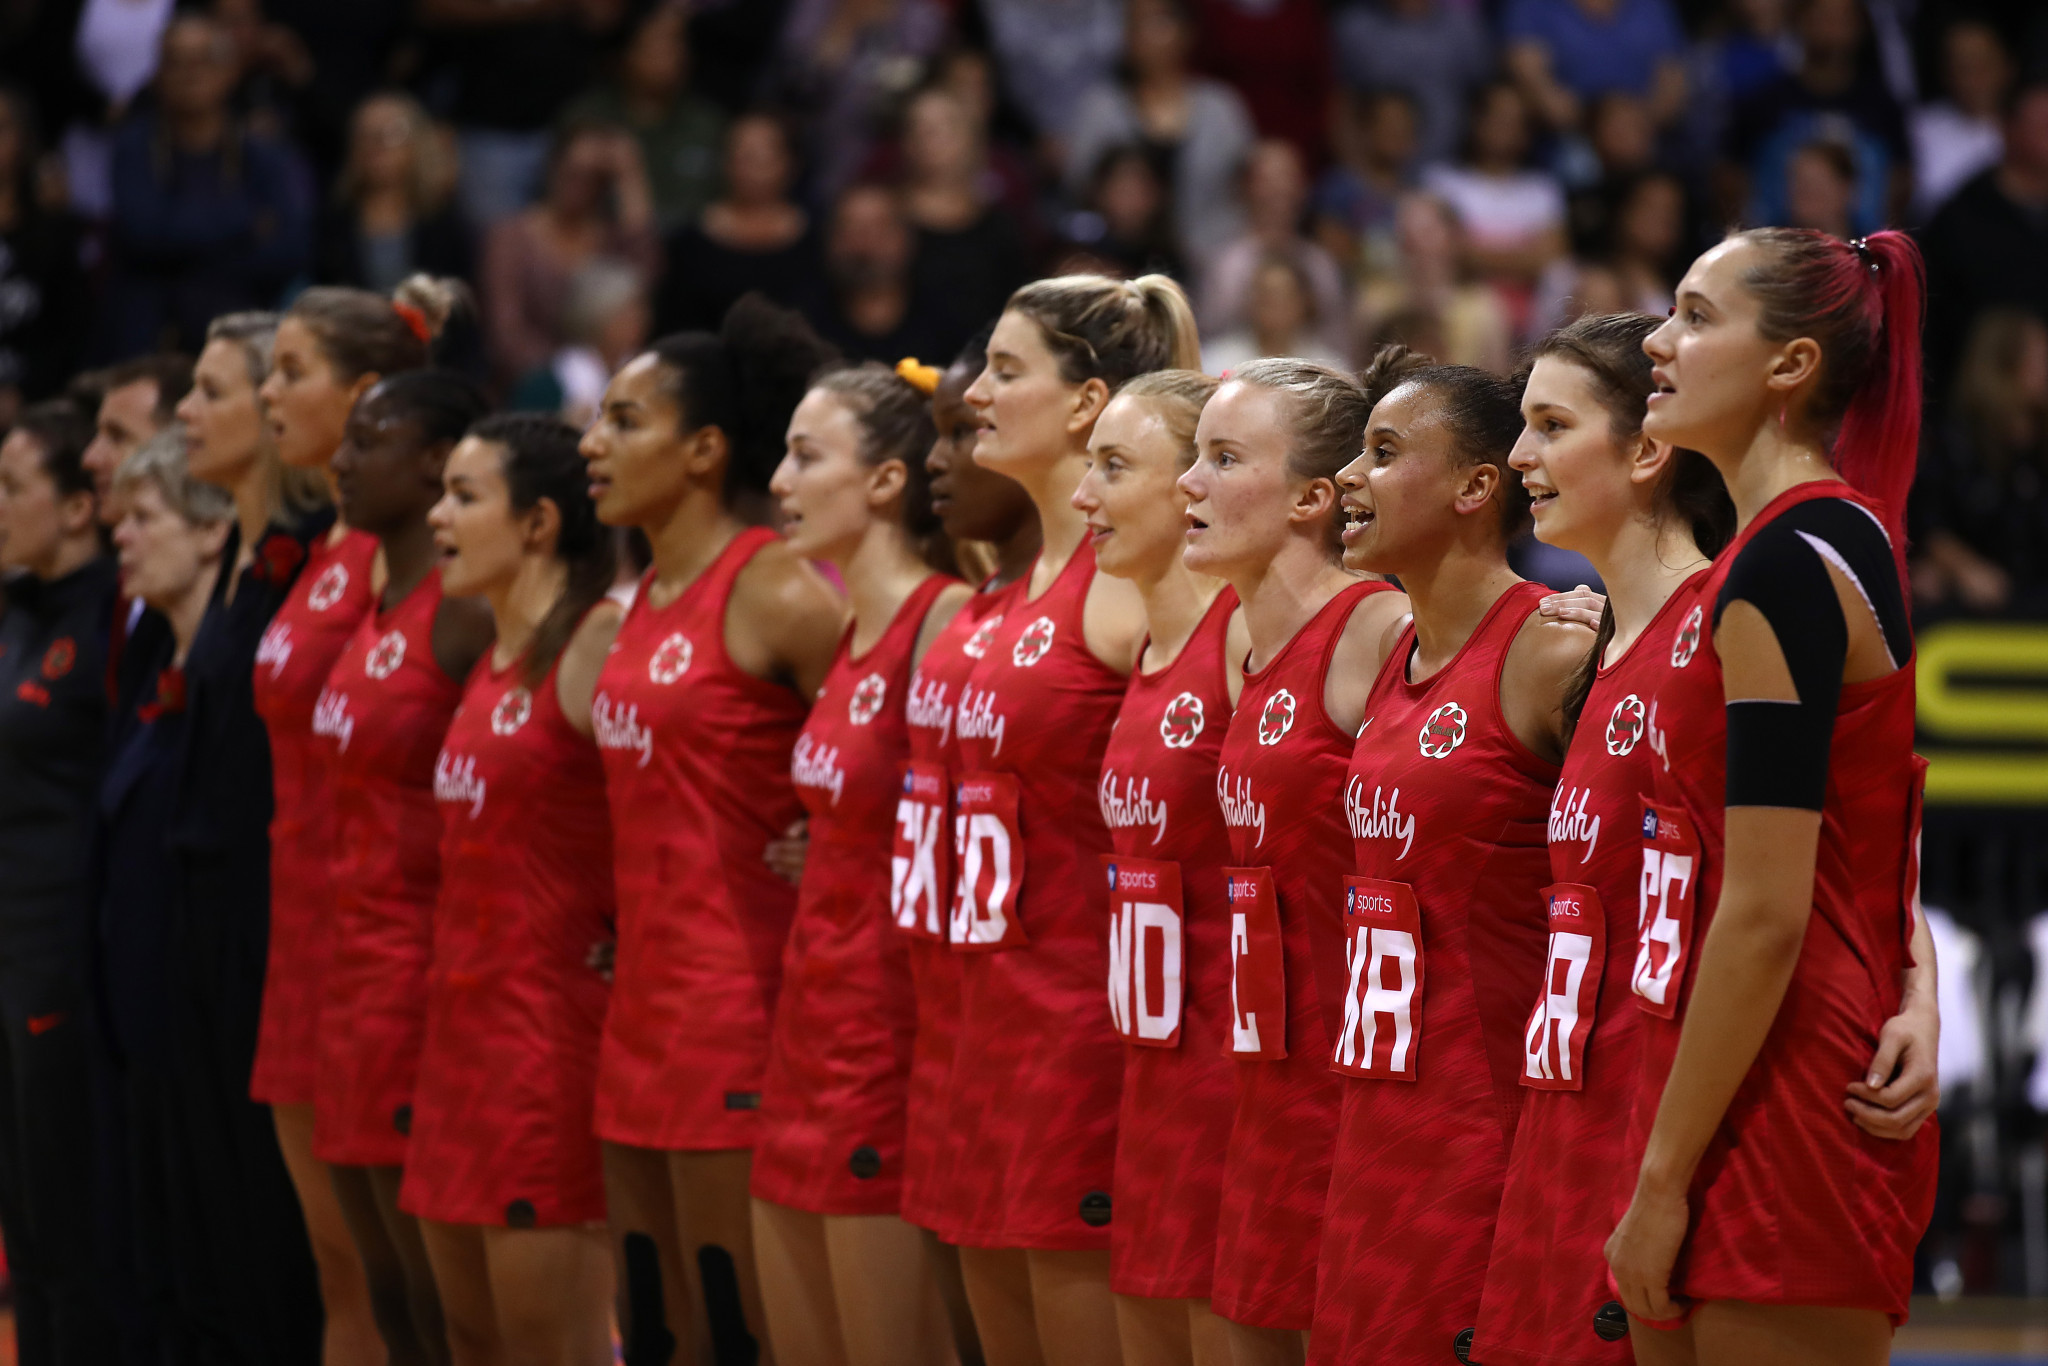 England netball team to play Superleague All Stars after Jamaica series cancelled